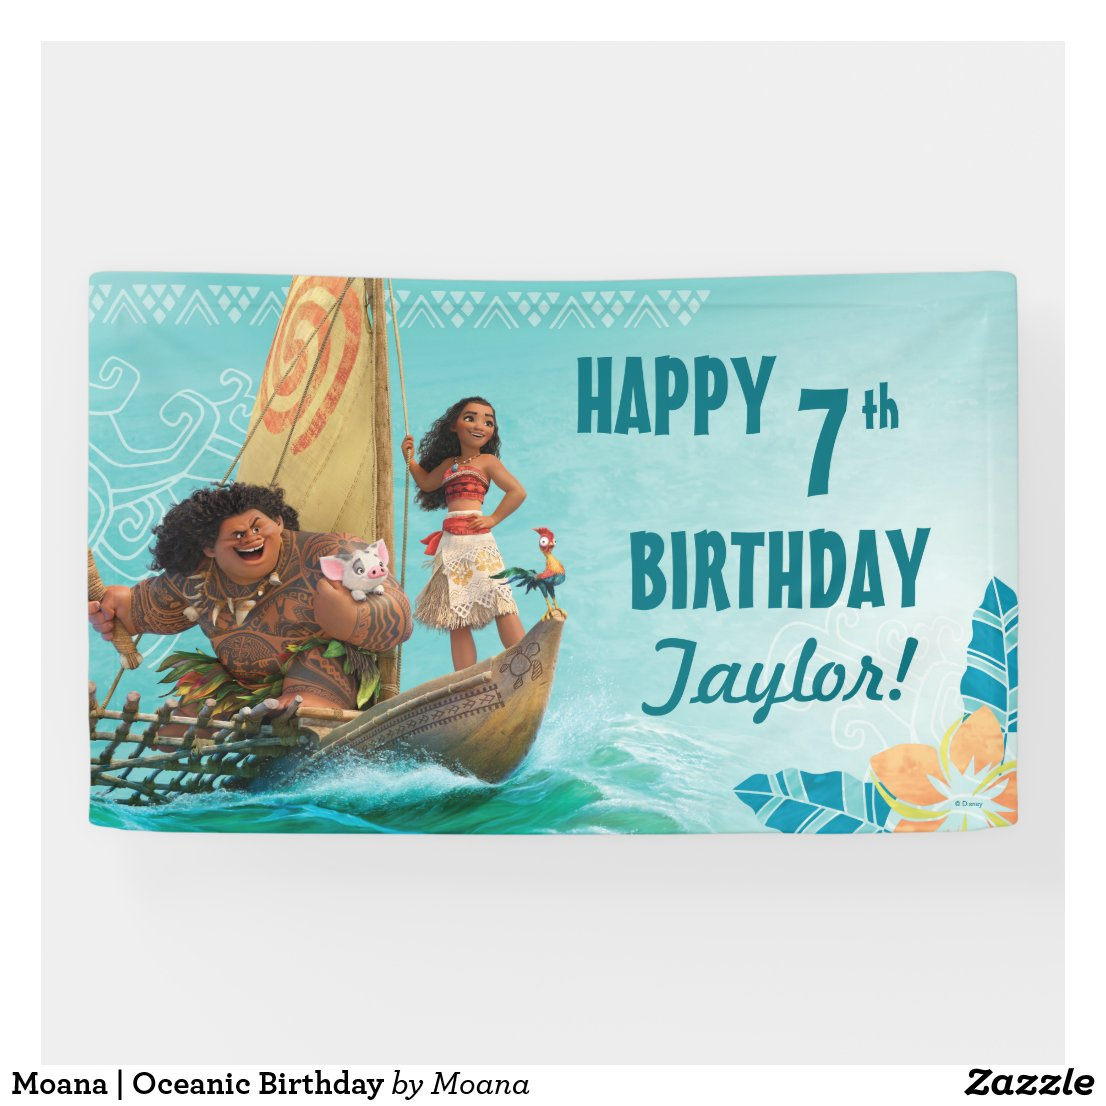 Moana | Oceanic Birthday